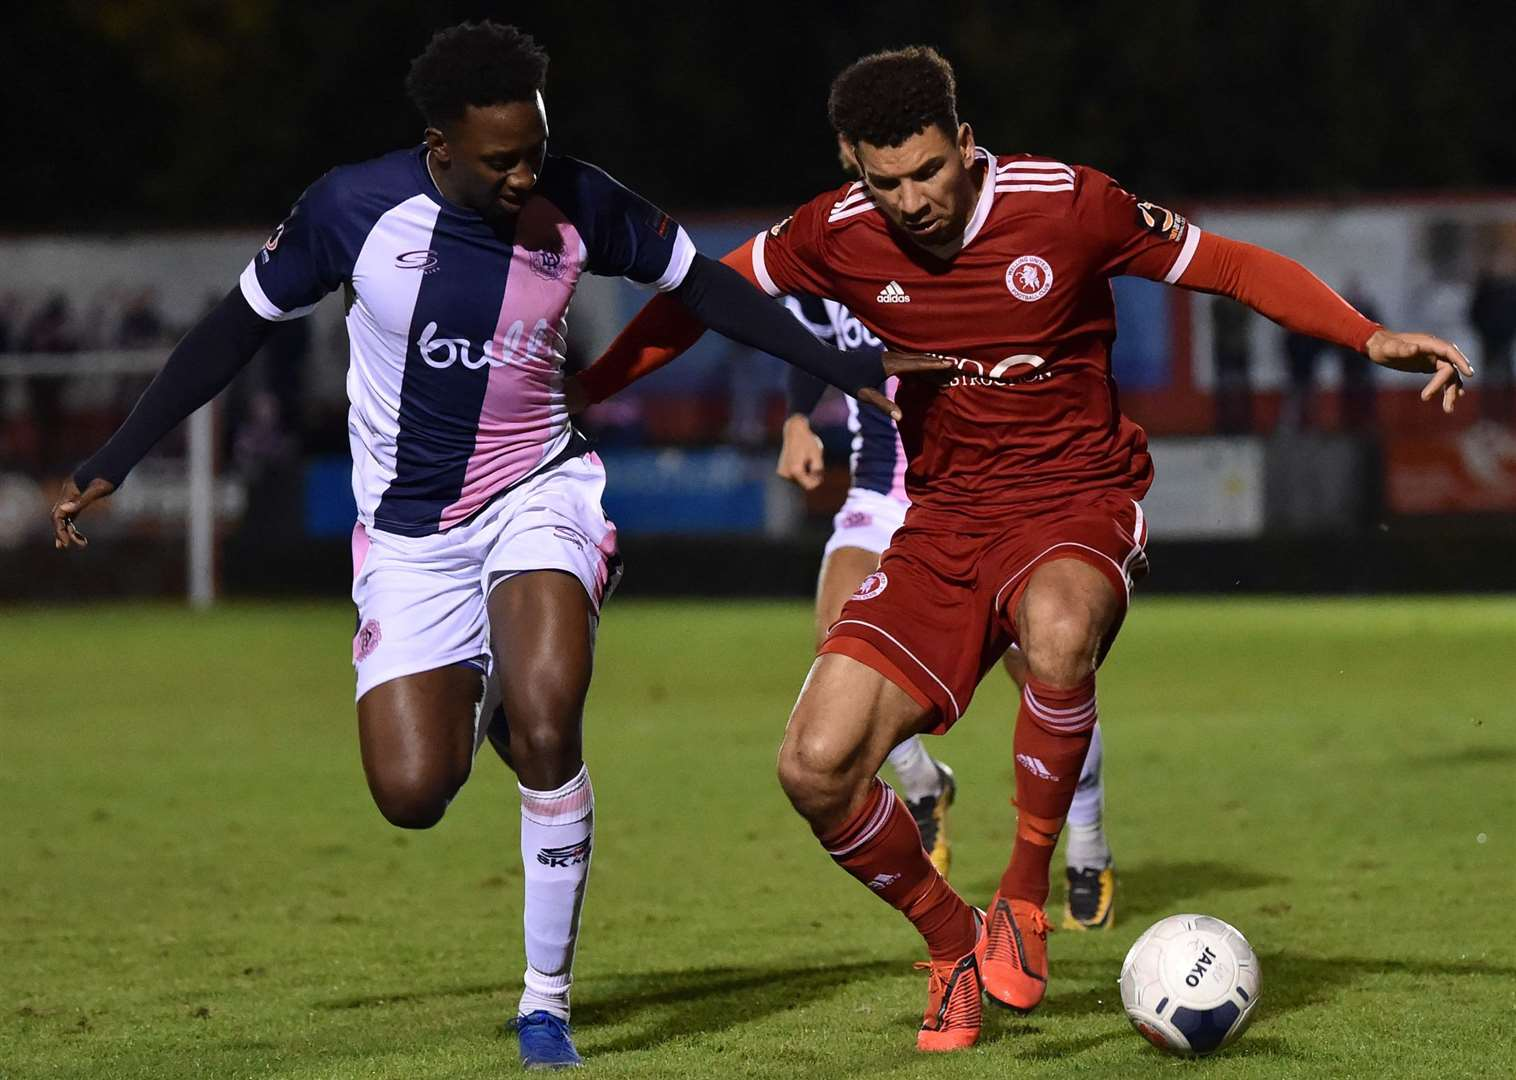 Welling's Nathan Green is closed down by Dulwich's Marvin McCoy. Picture: Keith Gillard